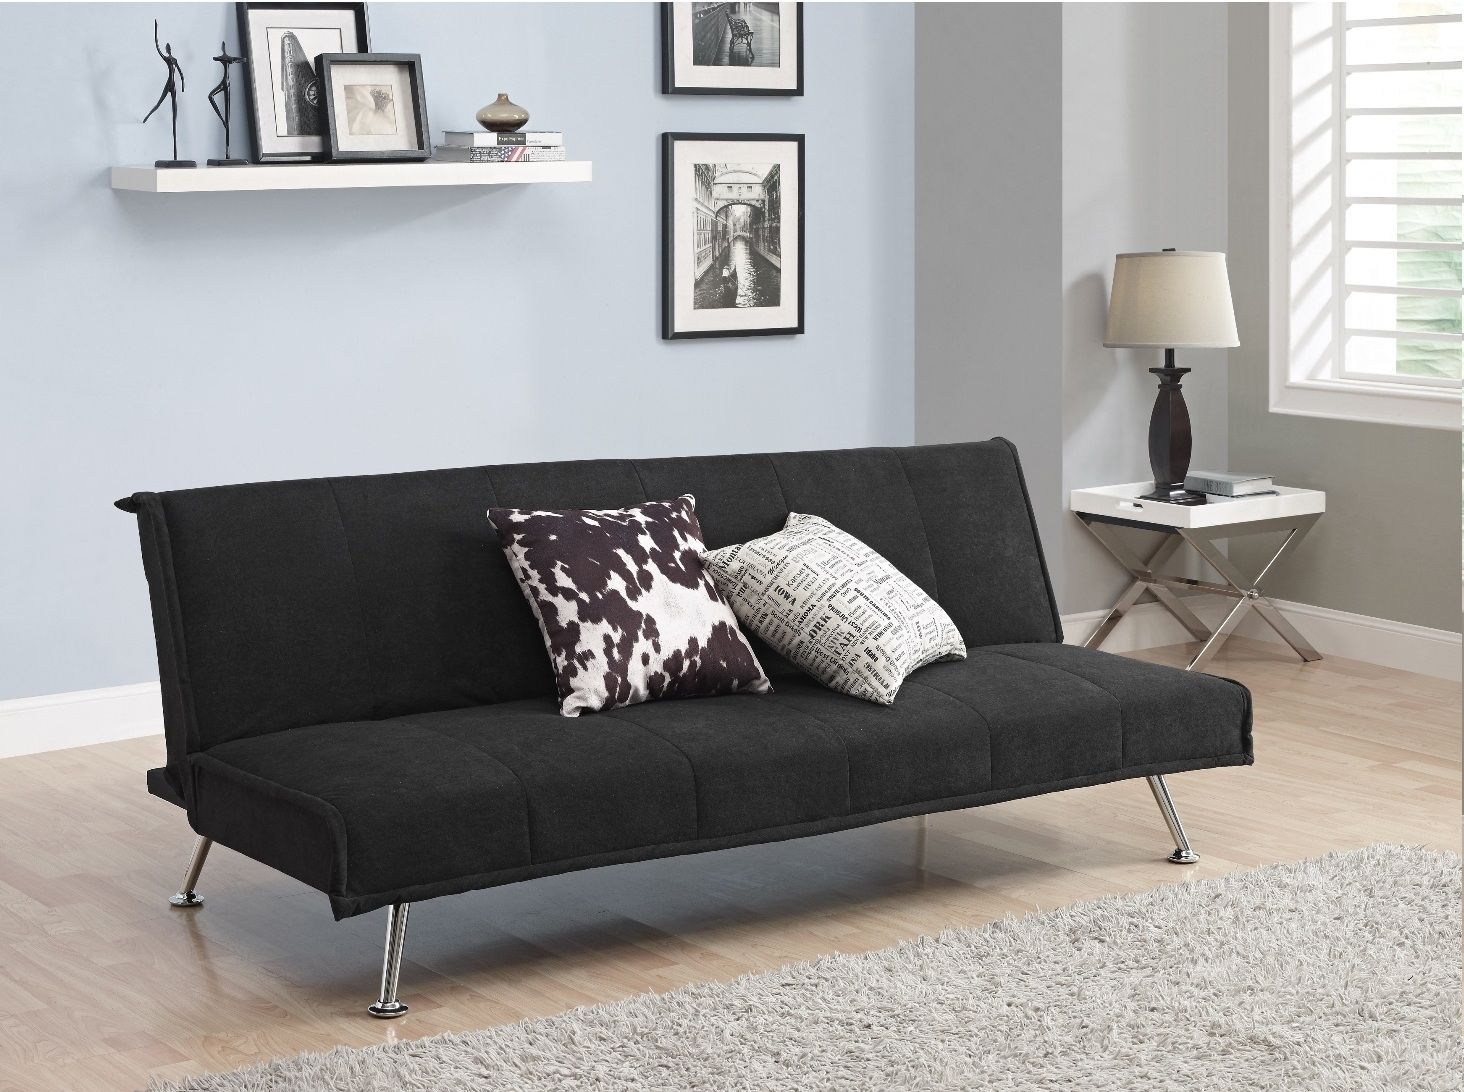 2016 comfortable futon sofa bed ideal choice for modern homes sofa rh pinterest com